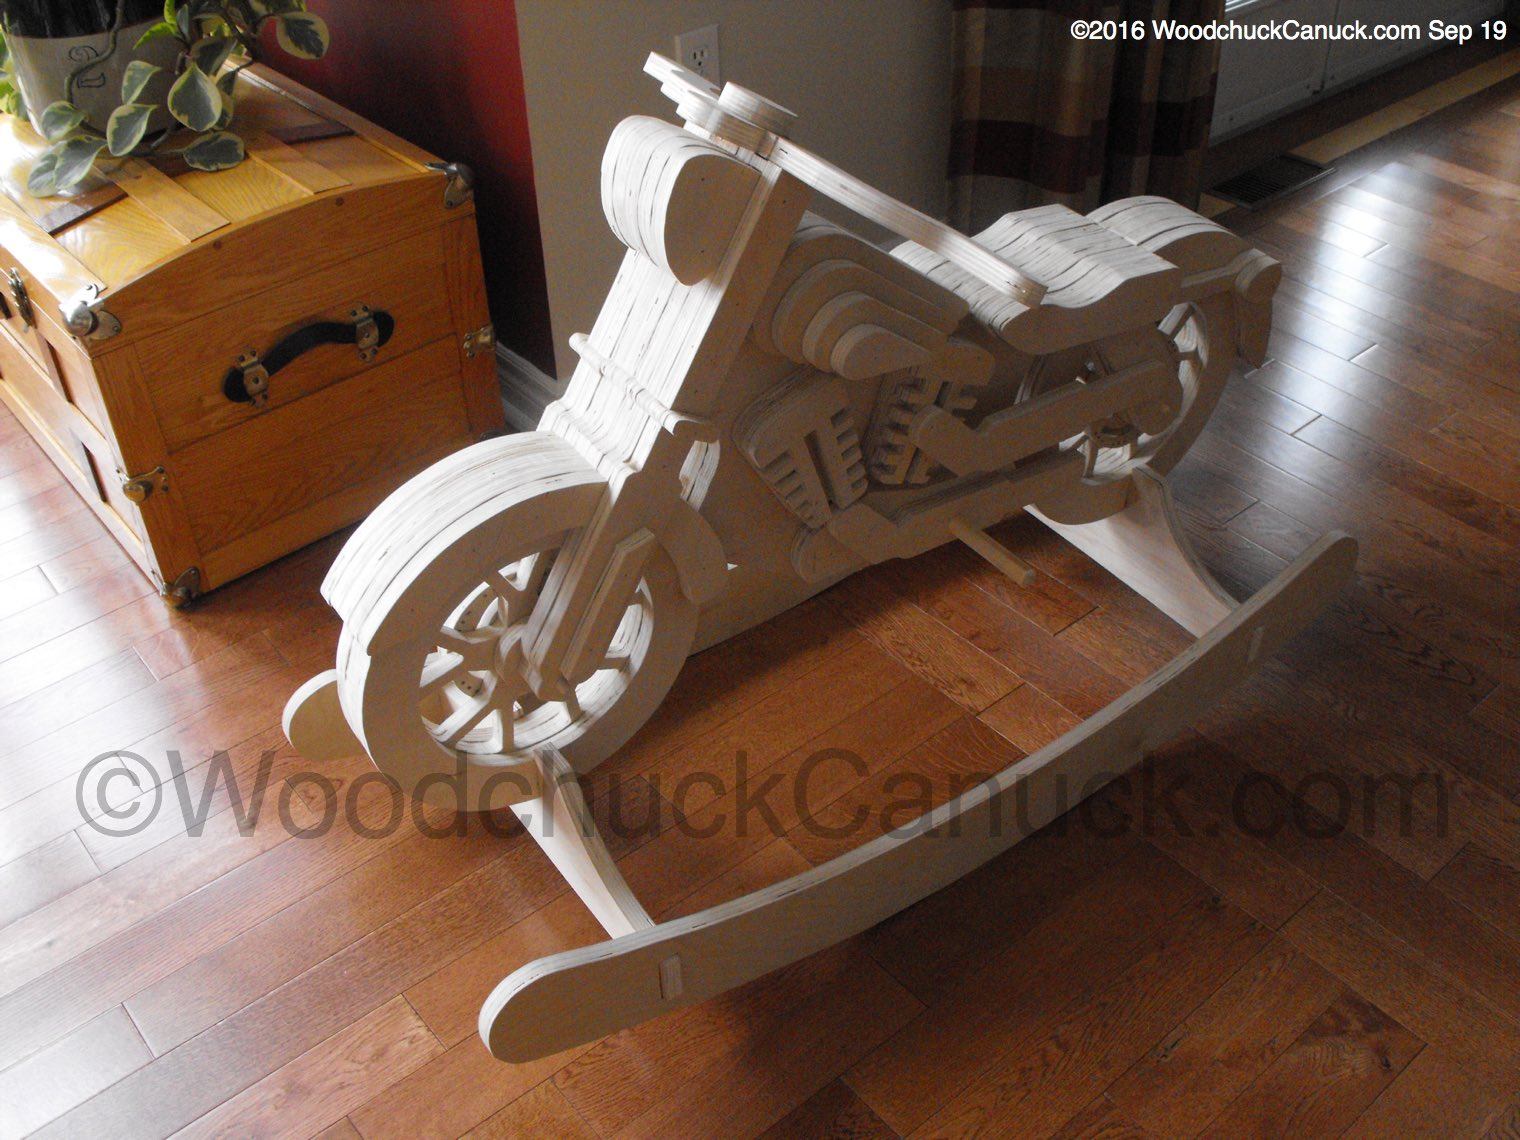 Motorcycle rocker prototype woodworking plans for Woodworking plan for motorcycle rocker toy